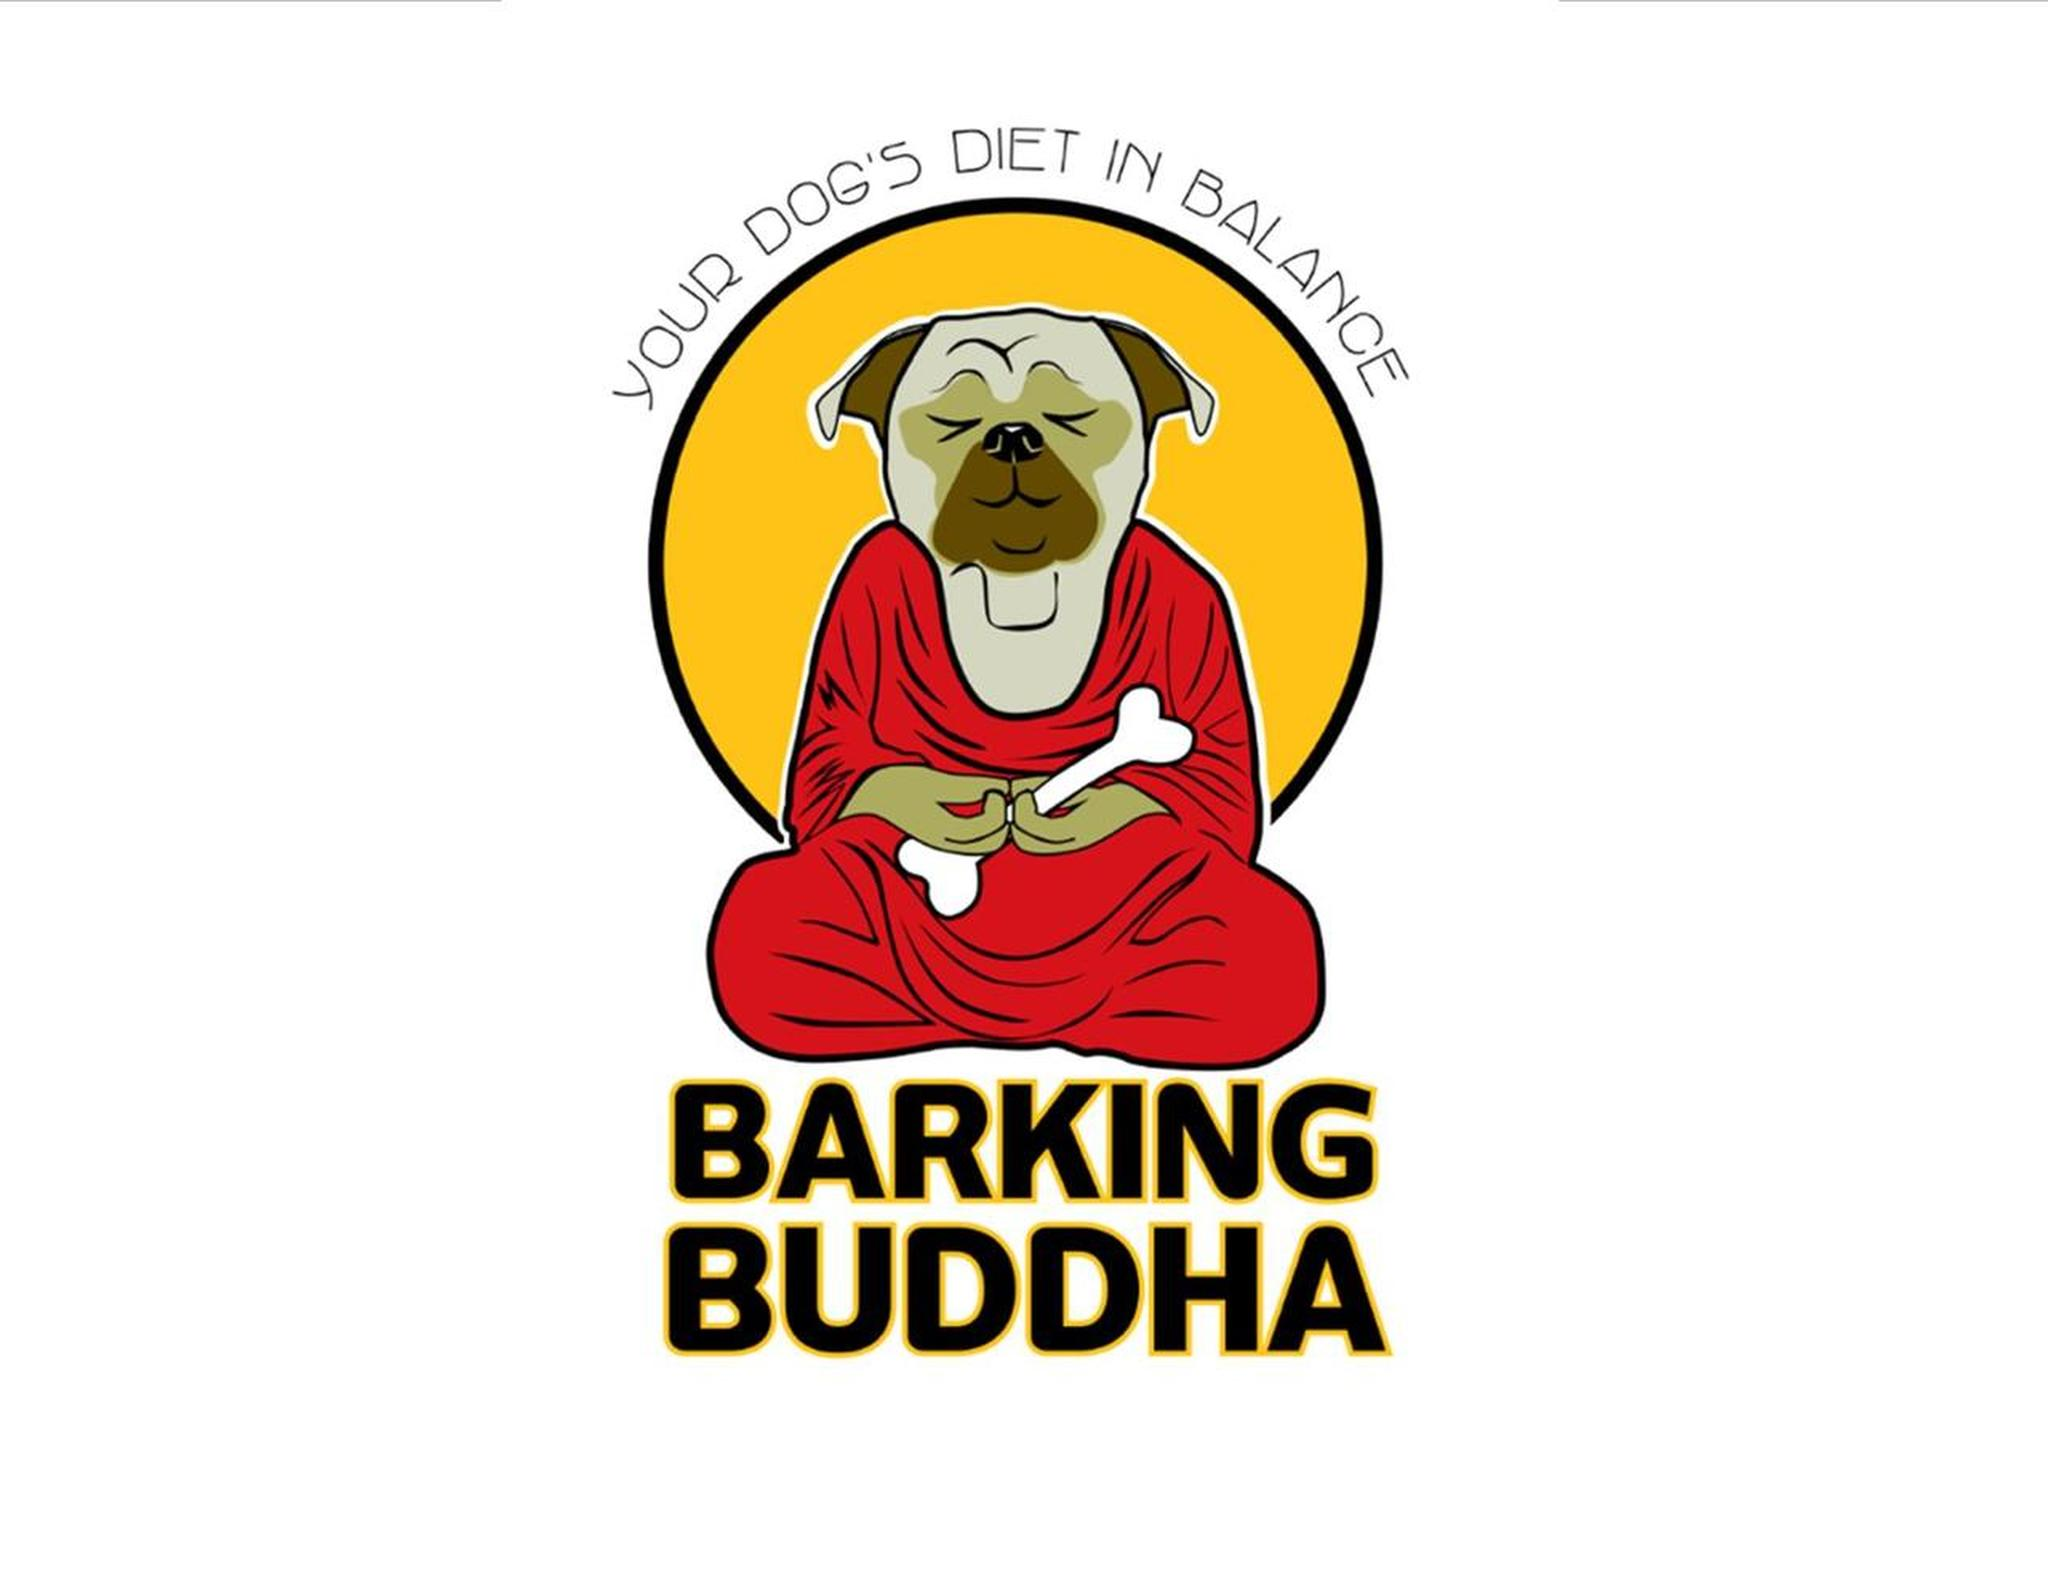 Barking Buddha Silverdale Washington